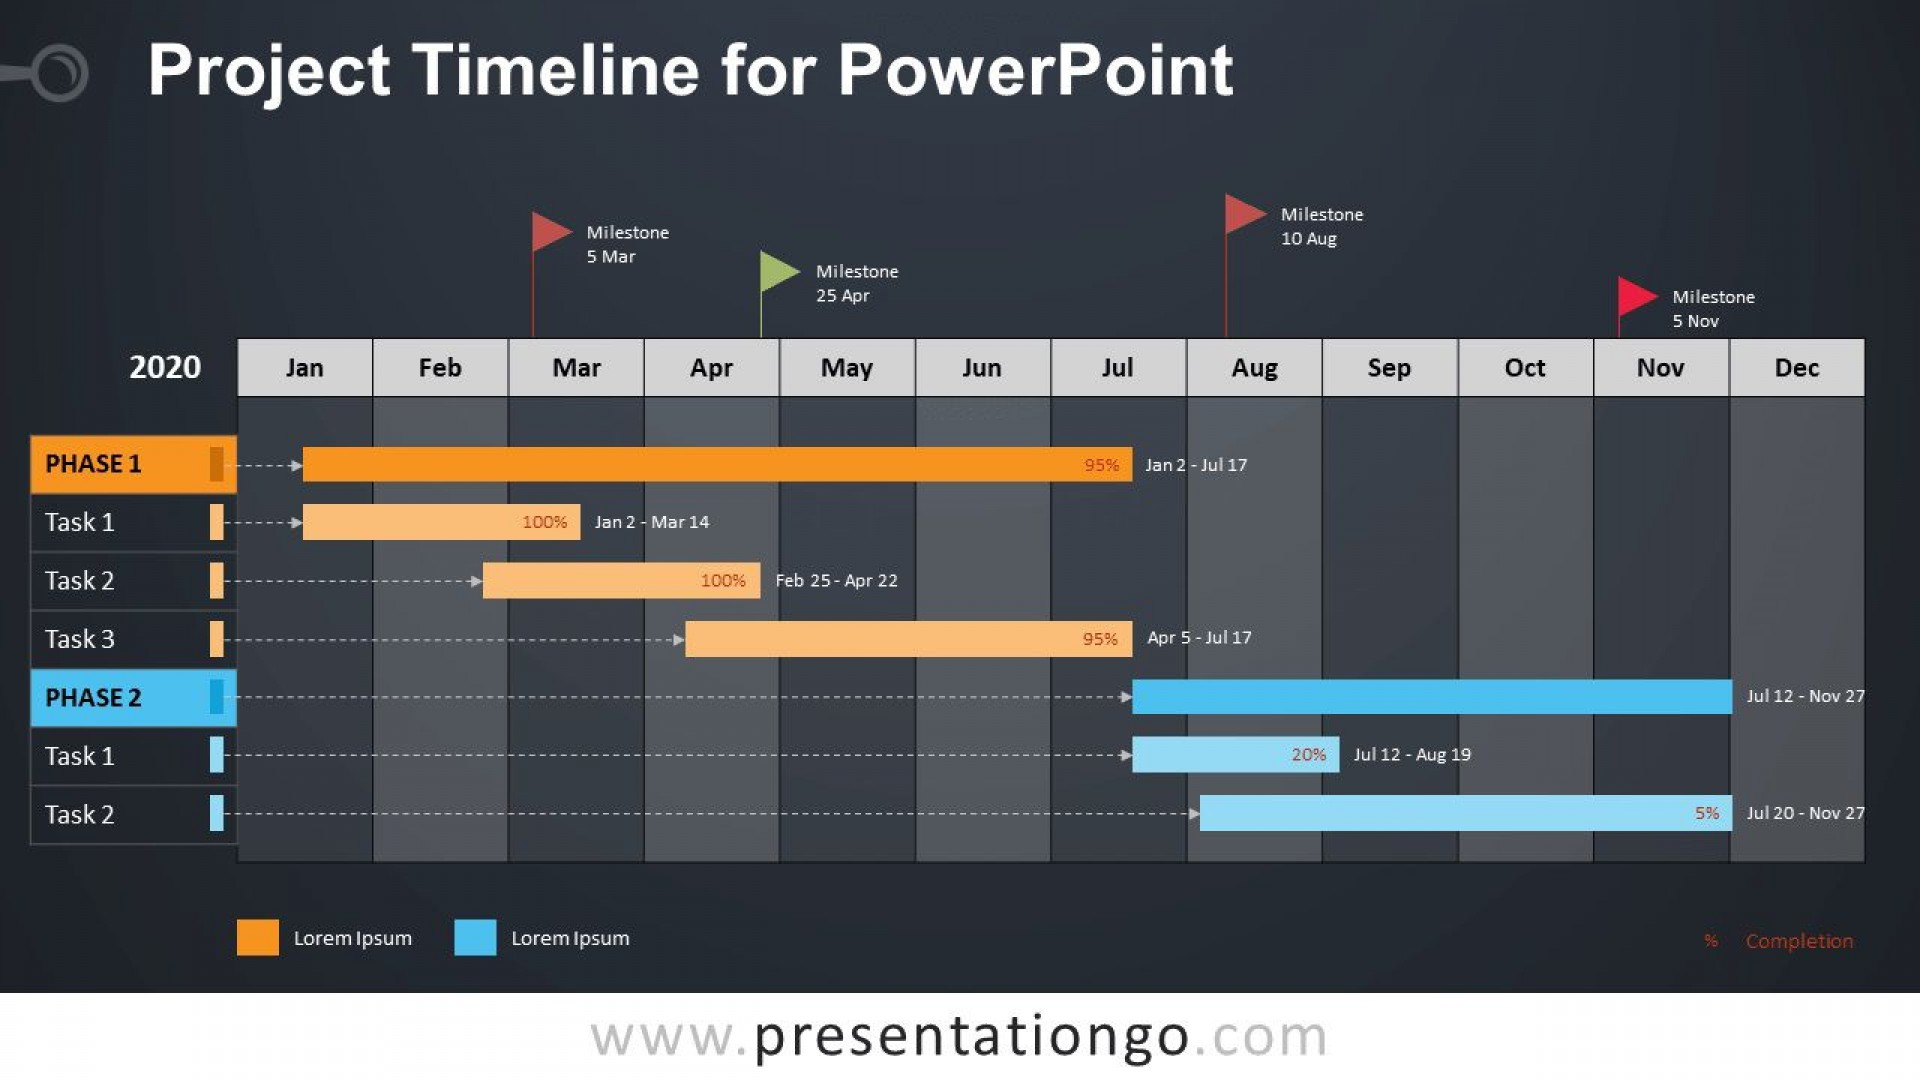 009 Dreaded Project Timeline Template Powerpoint Concept  M Ppt Free Download1920